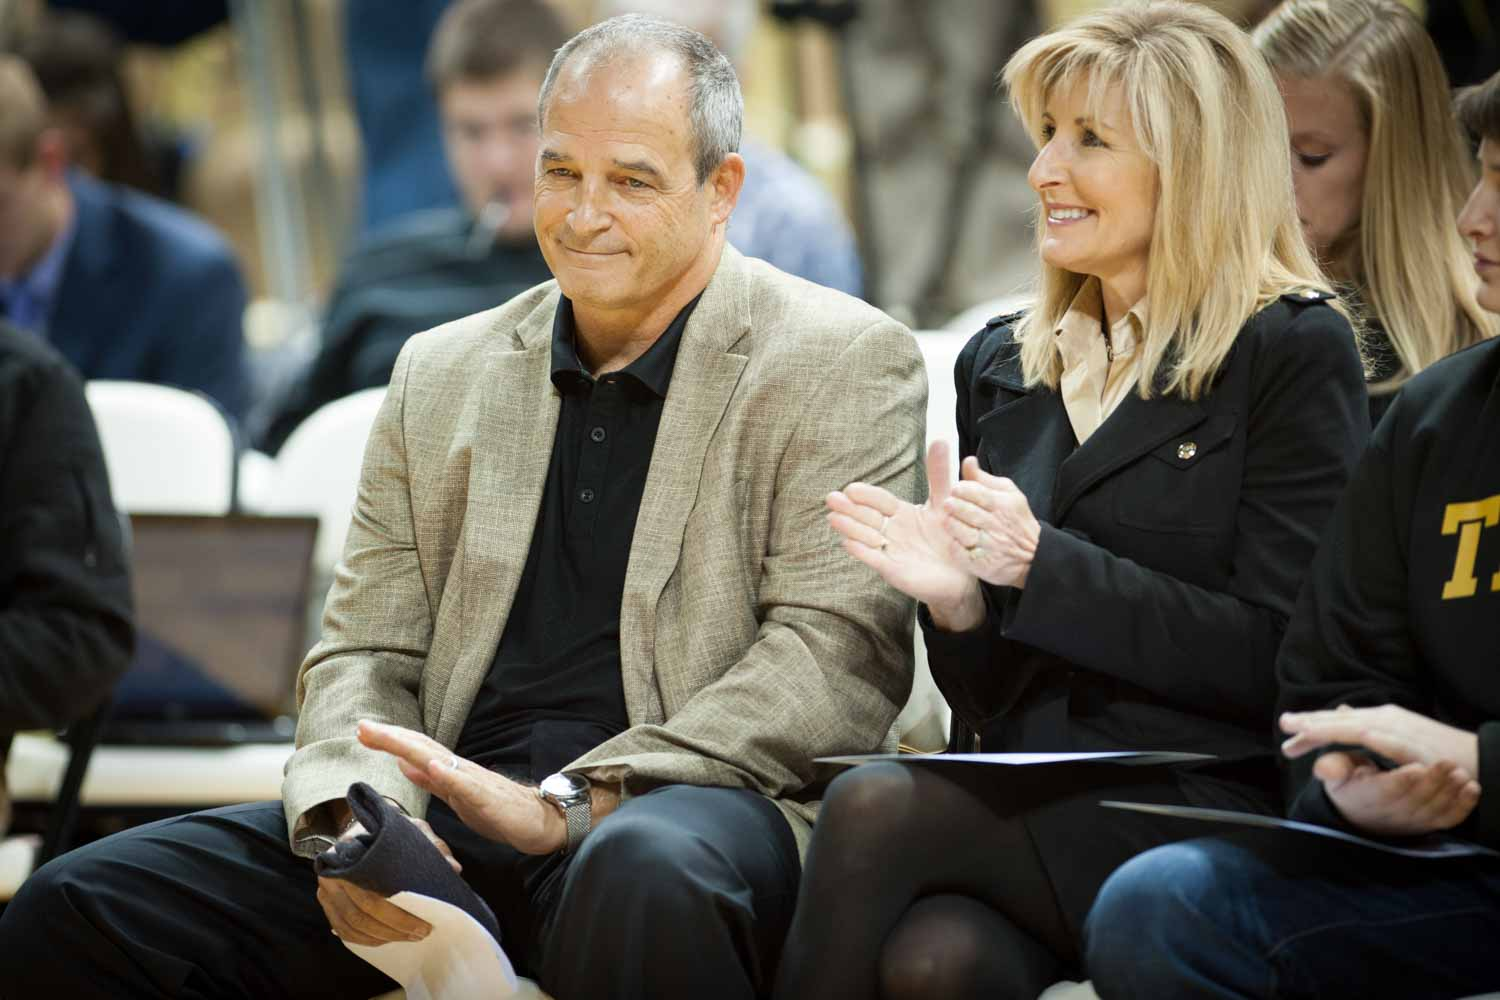 Coach Pinkel sits next to his wife, Missy Martinette, before delivering a speech to the audience at Mizzou Arena.